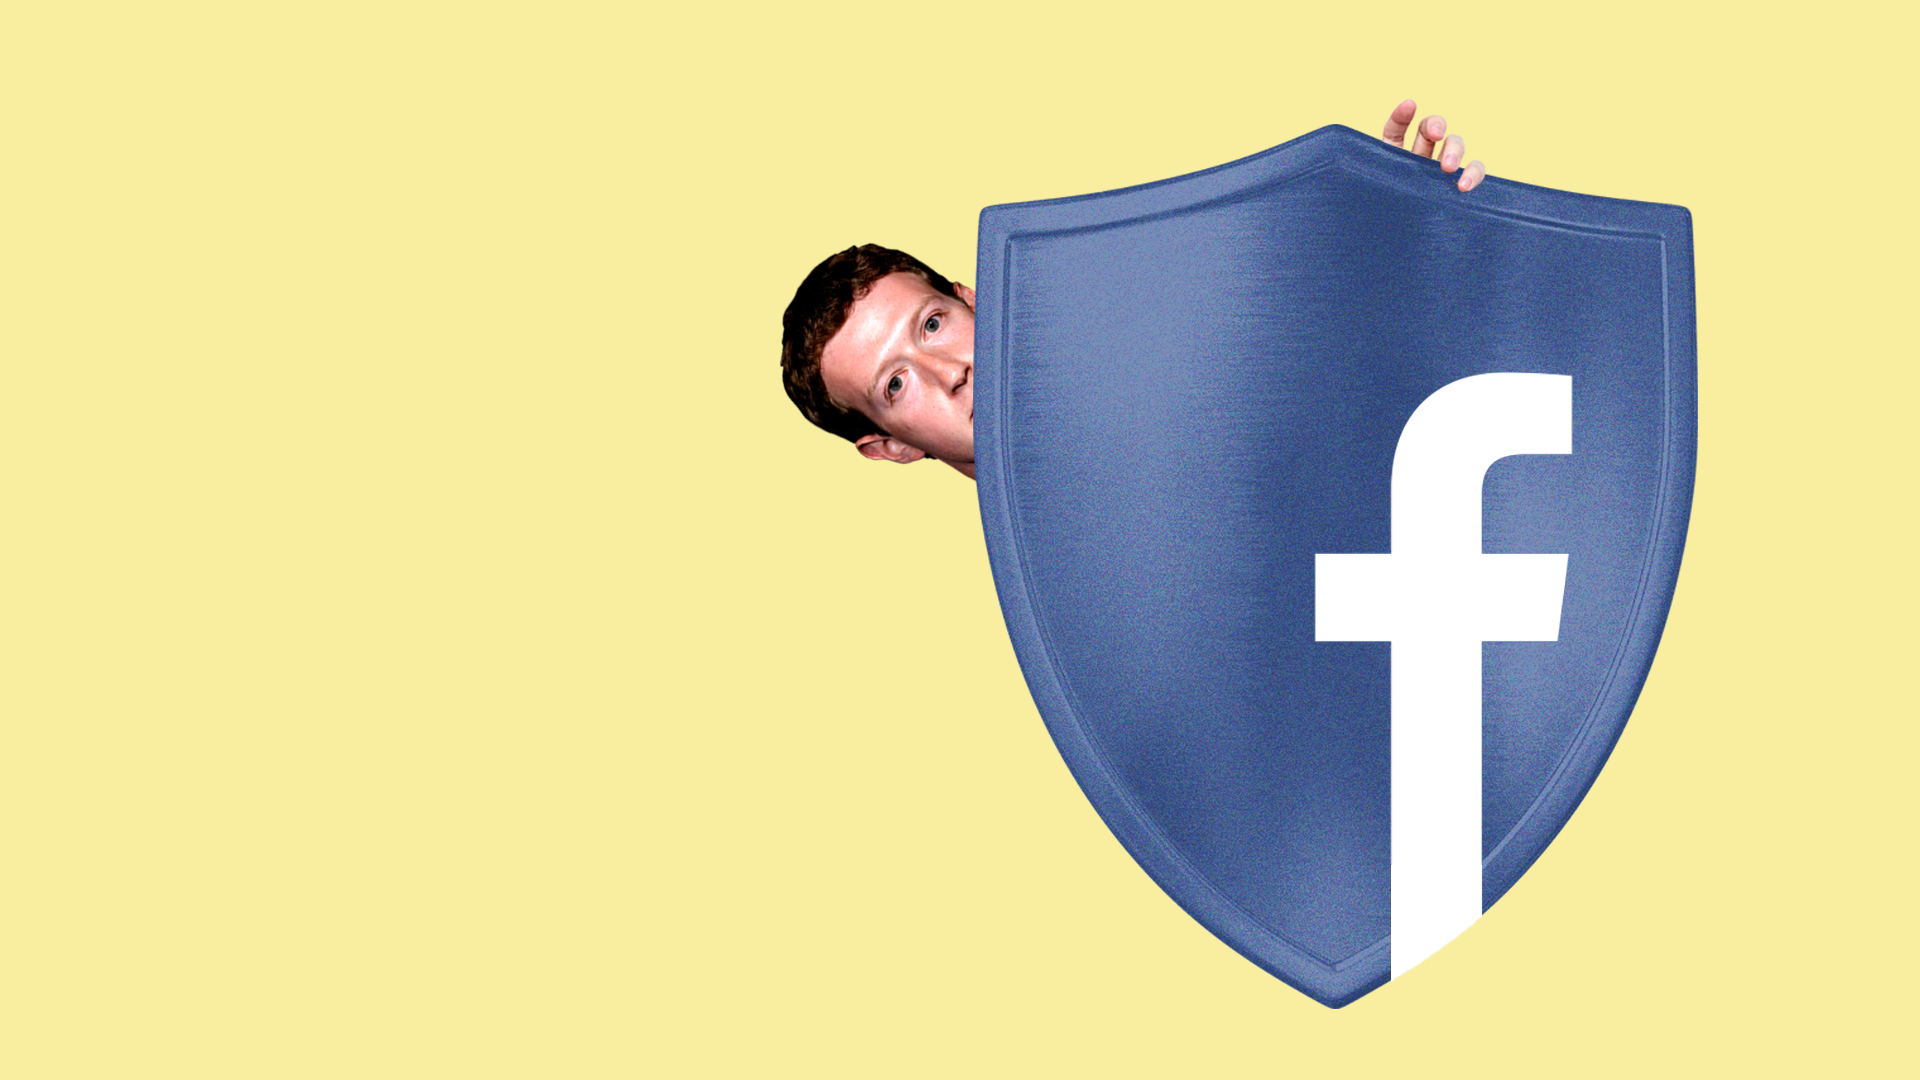 Facebook faces criminal investigation, multibillion-dollar FTC fine